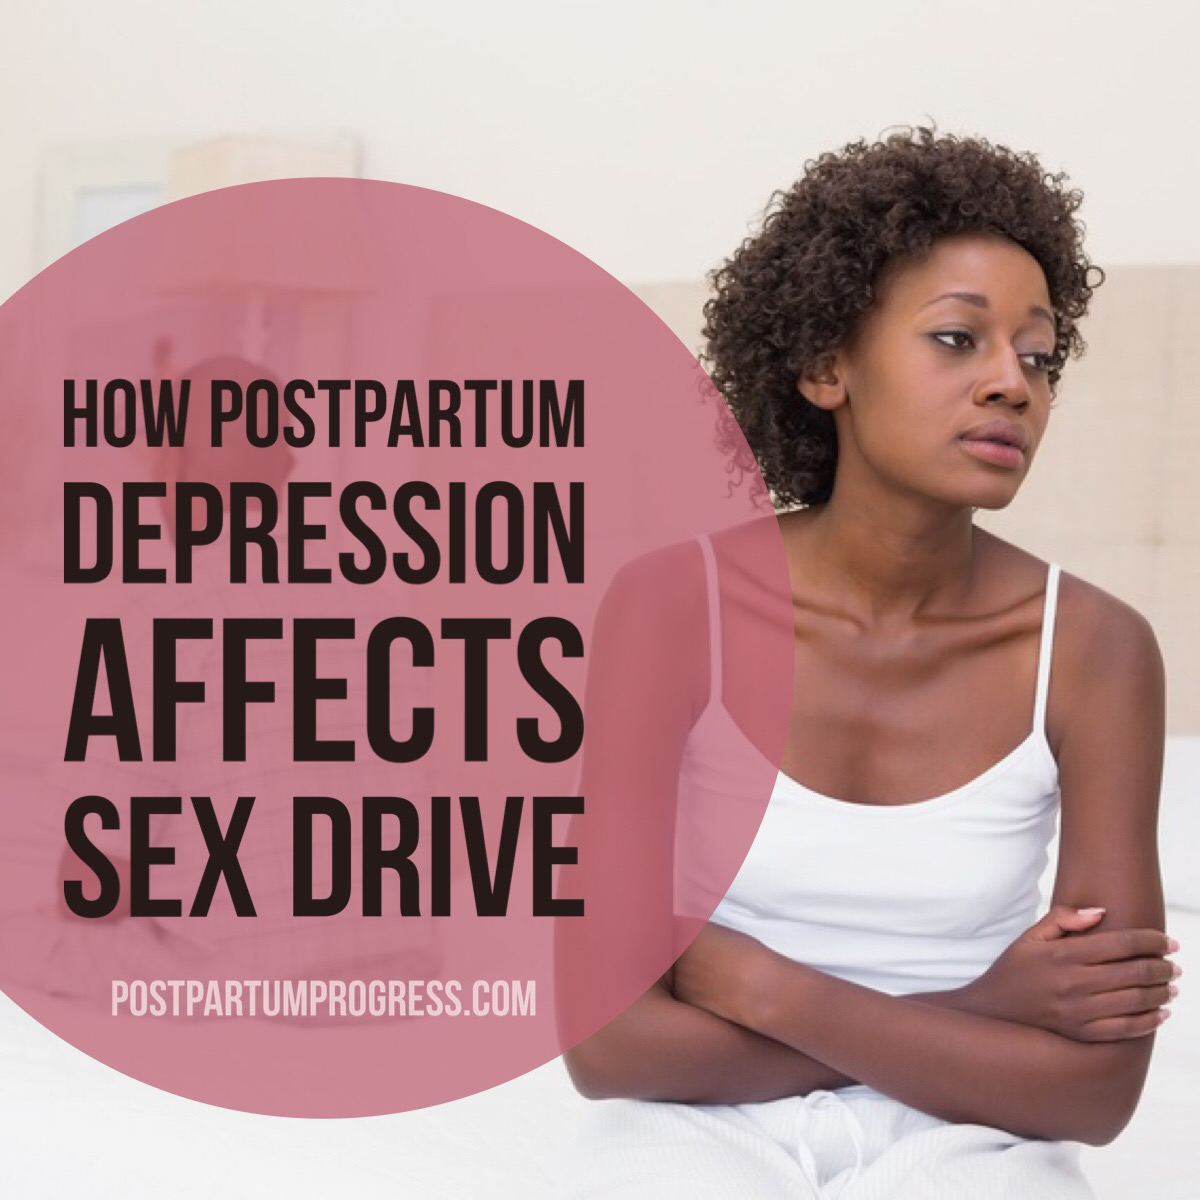 Depressions affect on sex drive